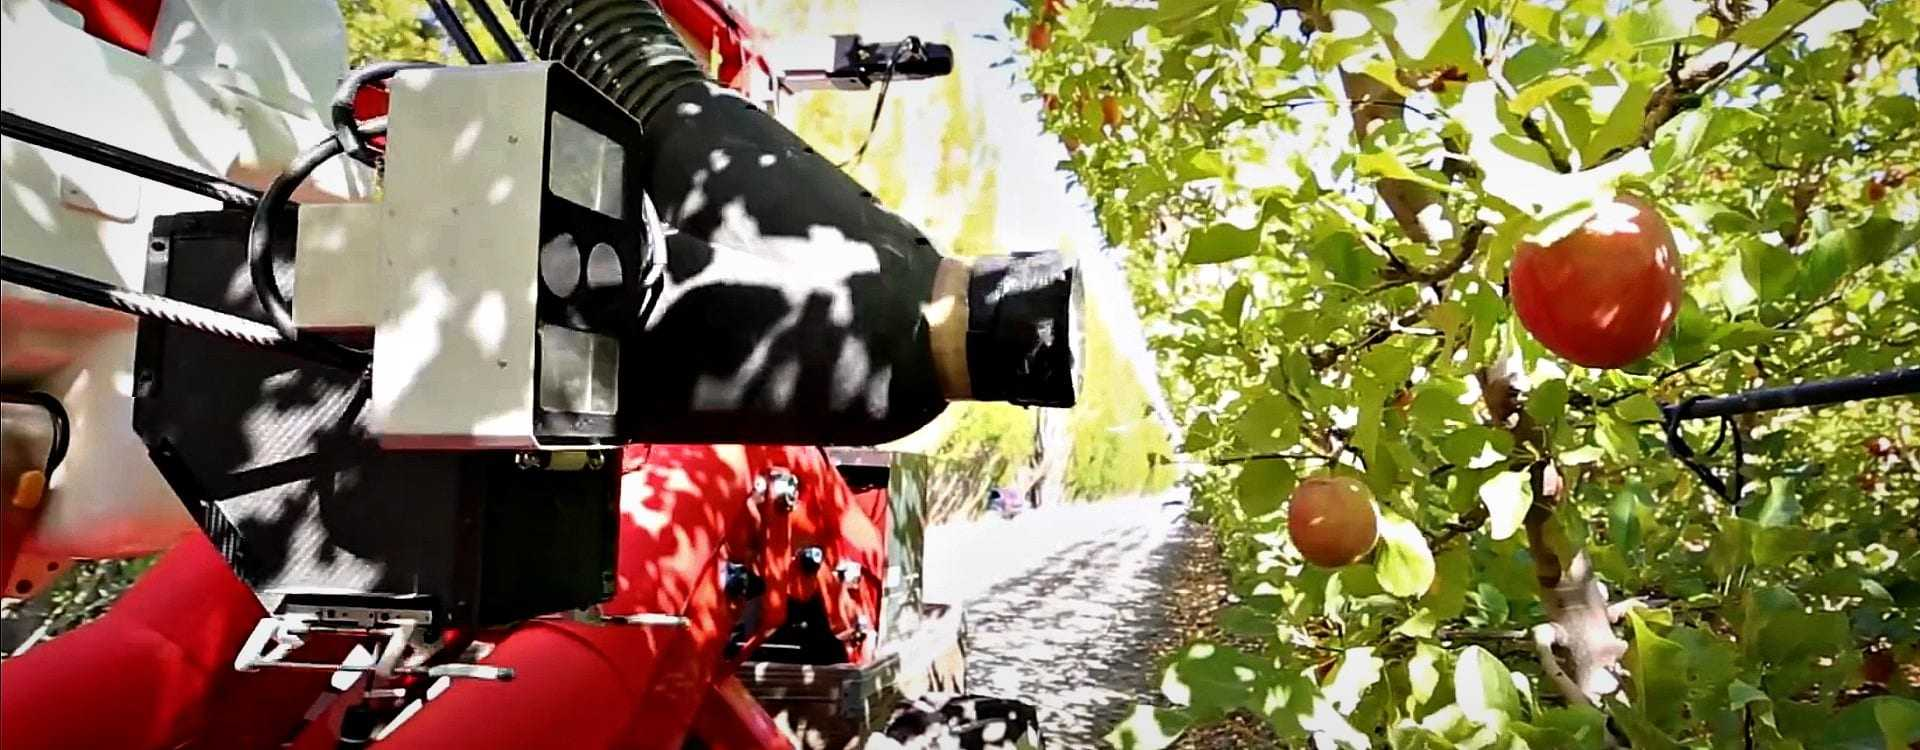 Robotic Olive Harvesters Might Be on the Horizon